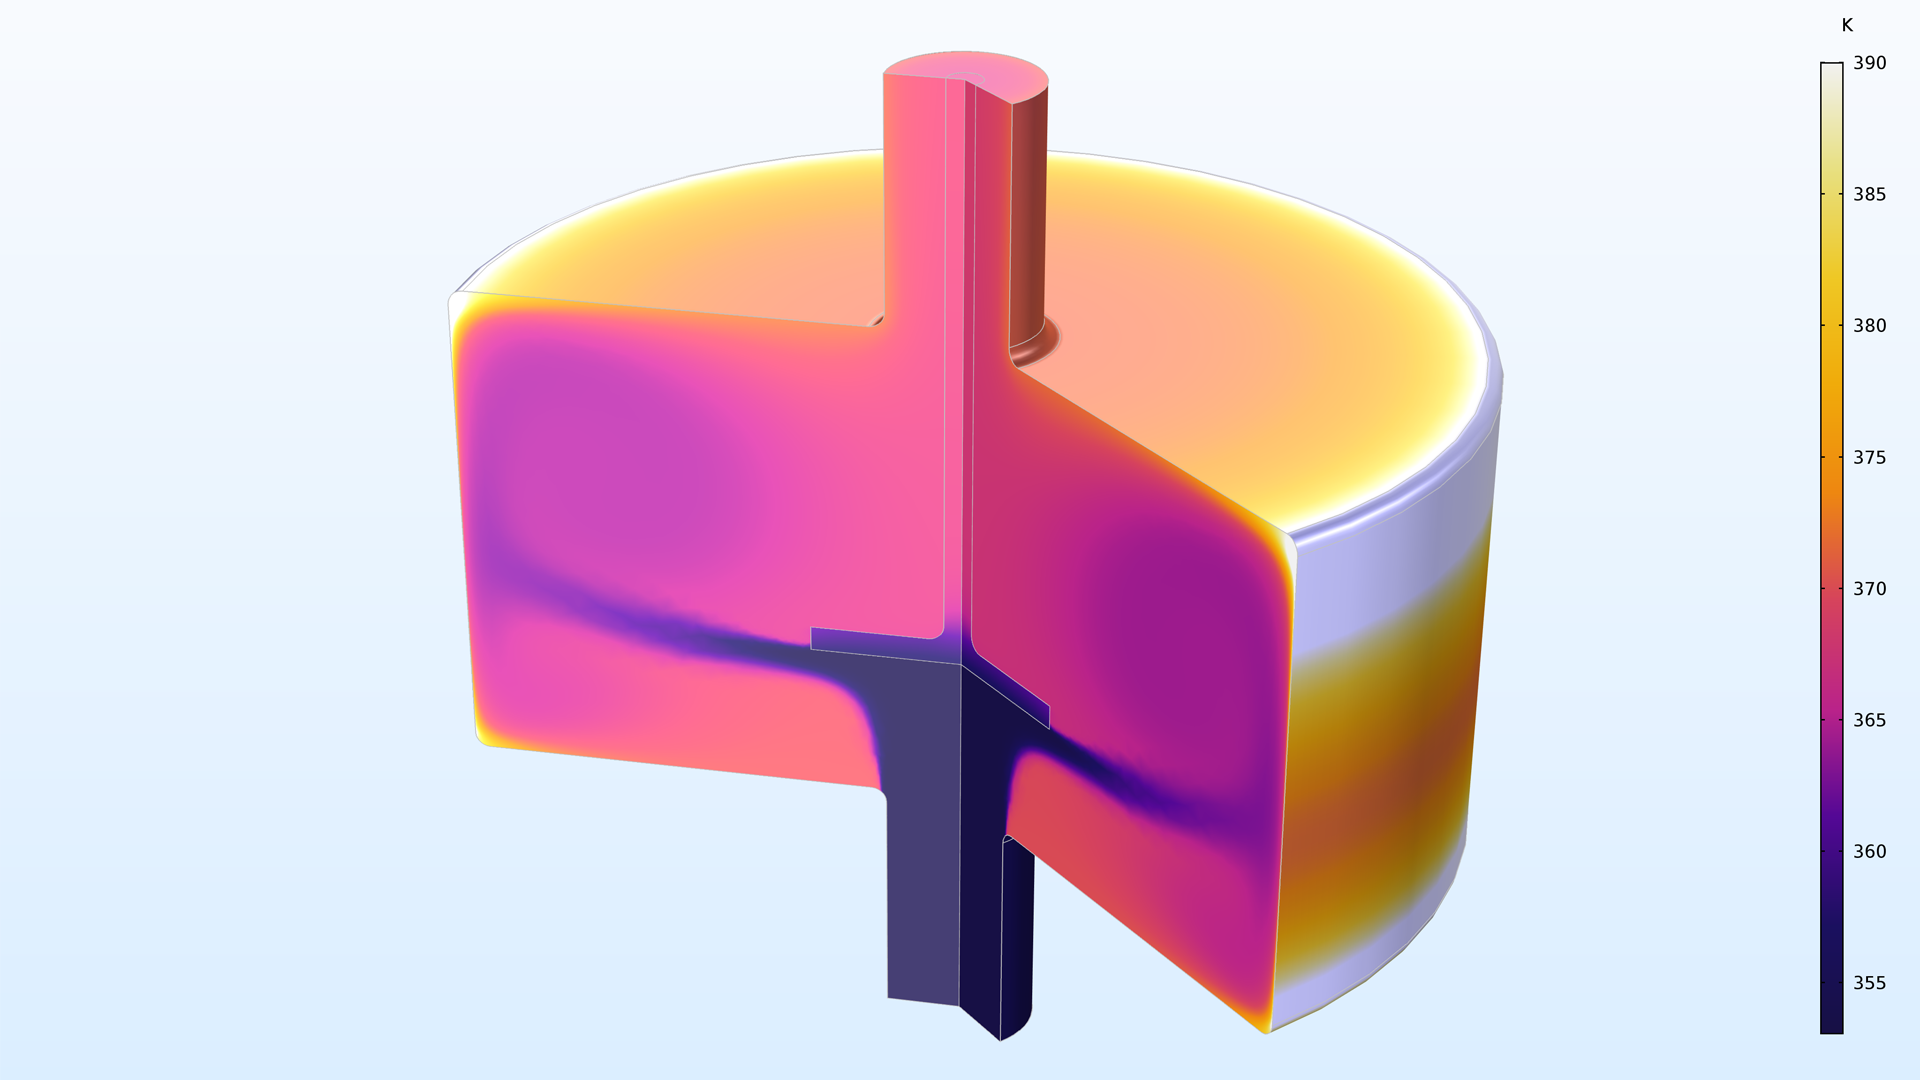 This engine coolant model employs the new thermodynamics properties database included in the Chemical Reaction Engineering Module.